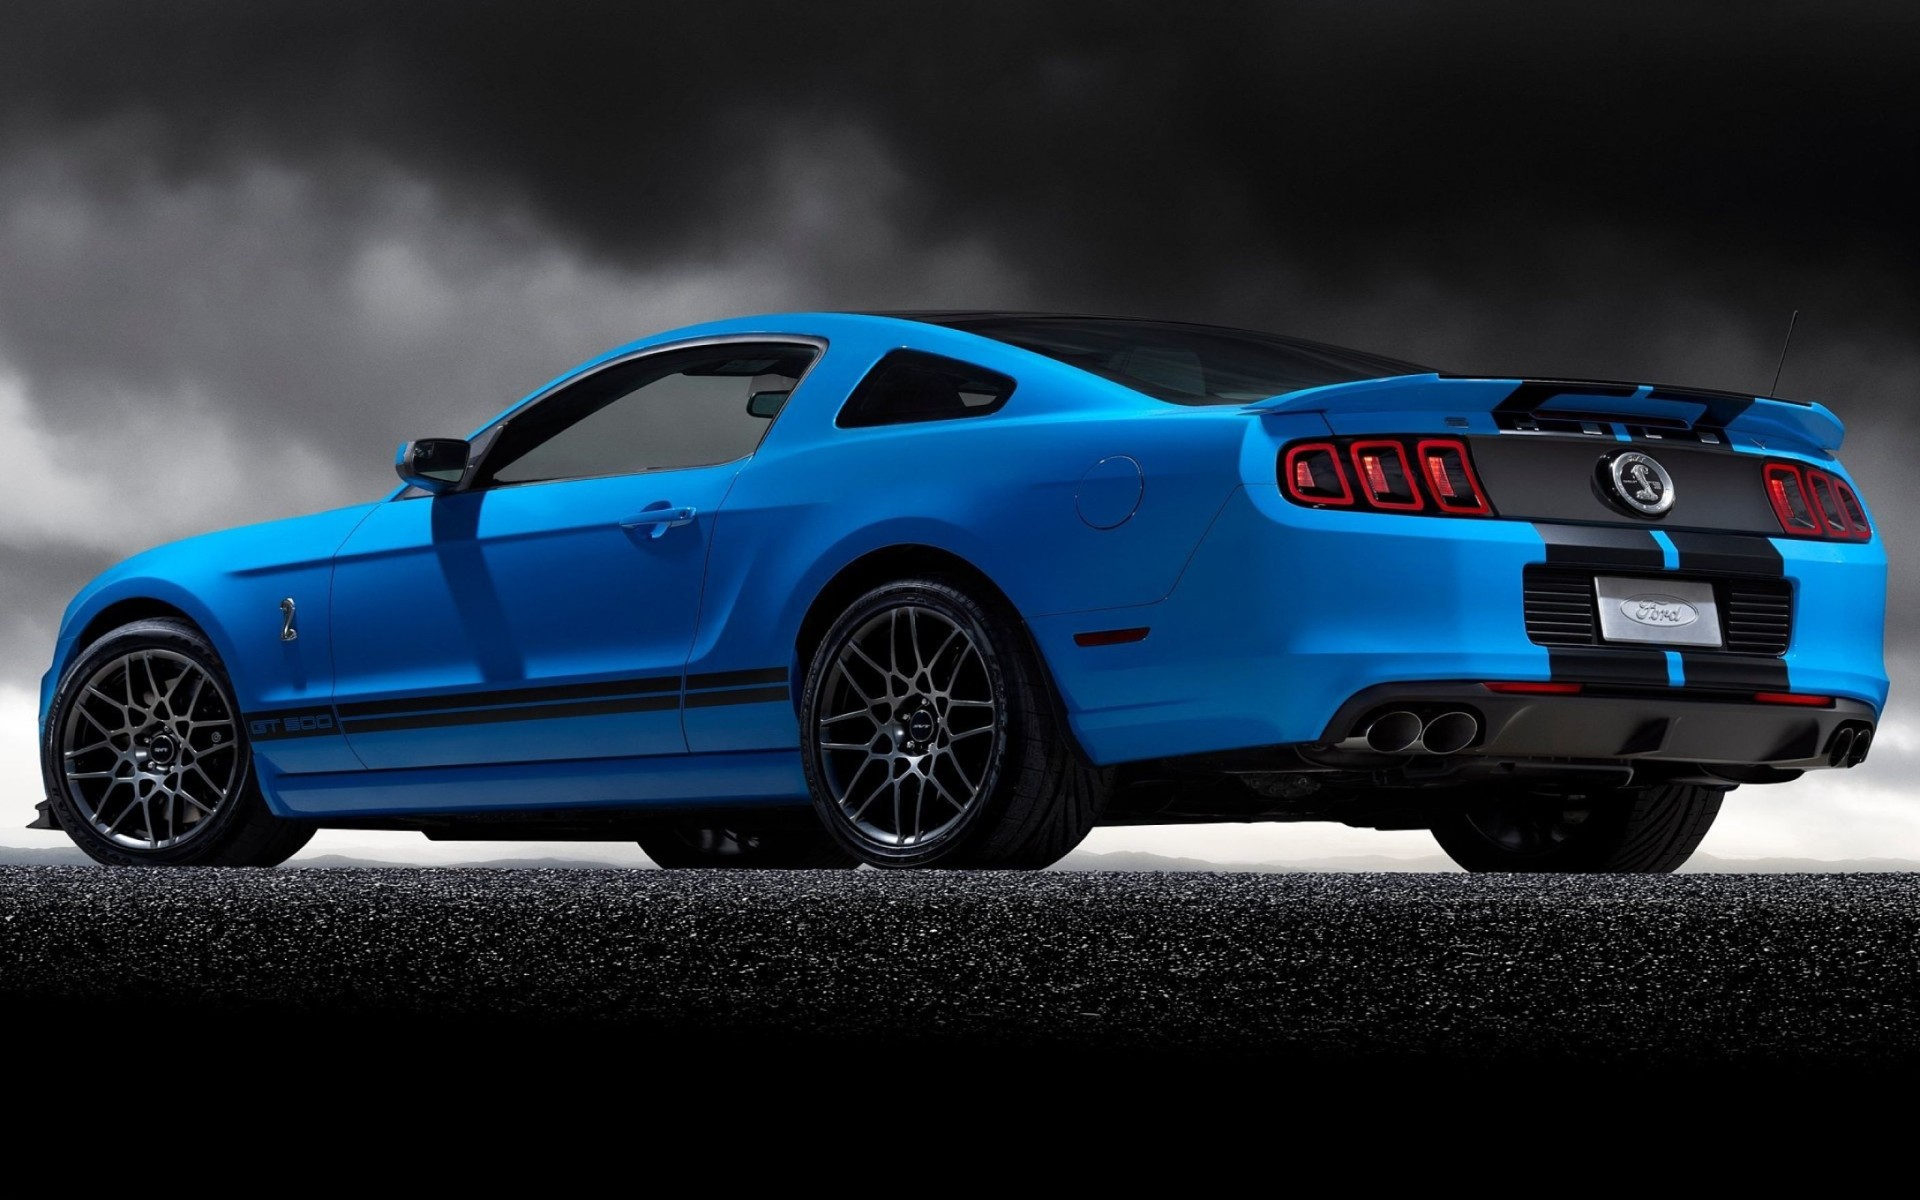 Ford Shelby Mustang Gt 500 Wallpaper